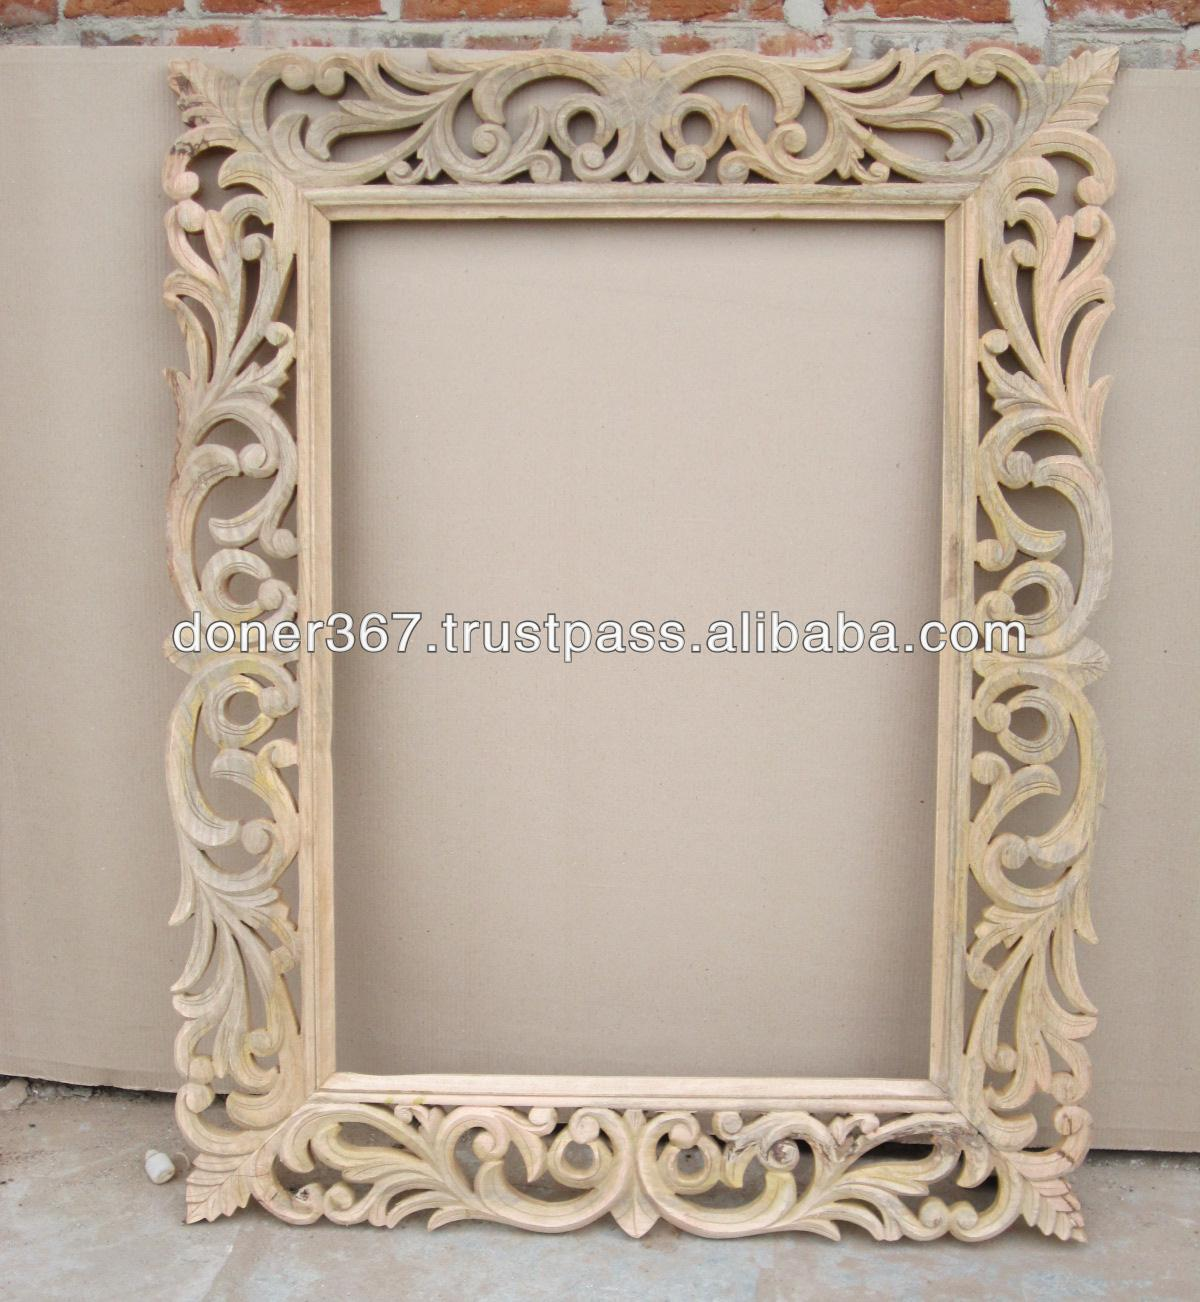 Magnificent Mirror Picture Frame Festooning - Picture Frame Ideas ...